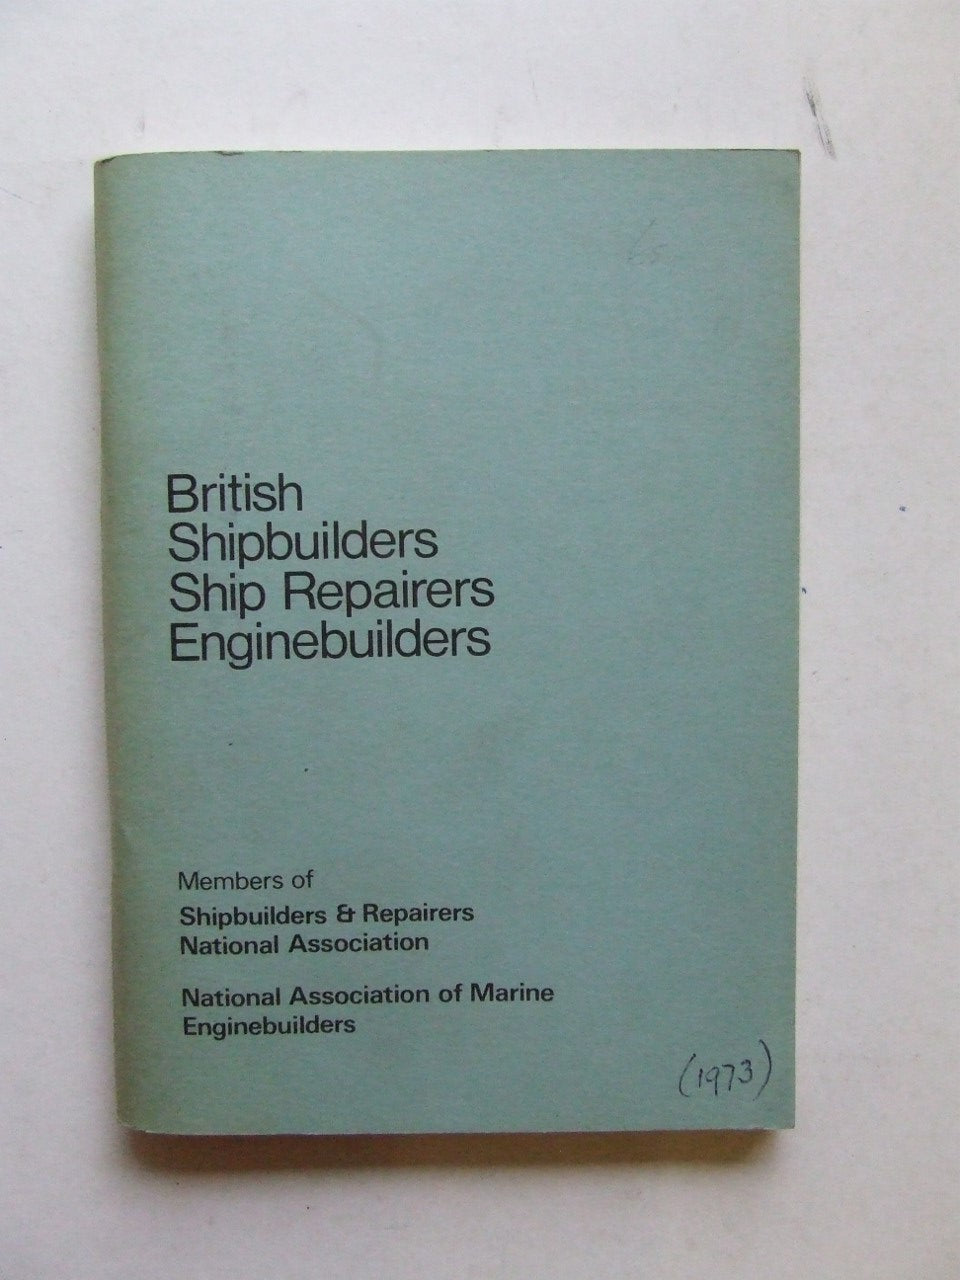 British Shipbuilders, Ship Repairers, Enginebuilders